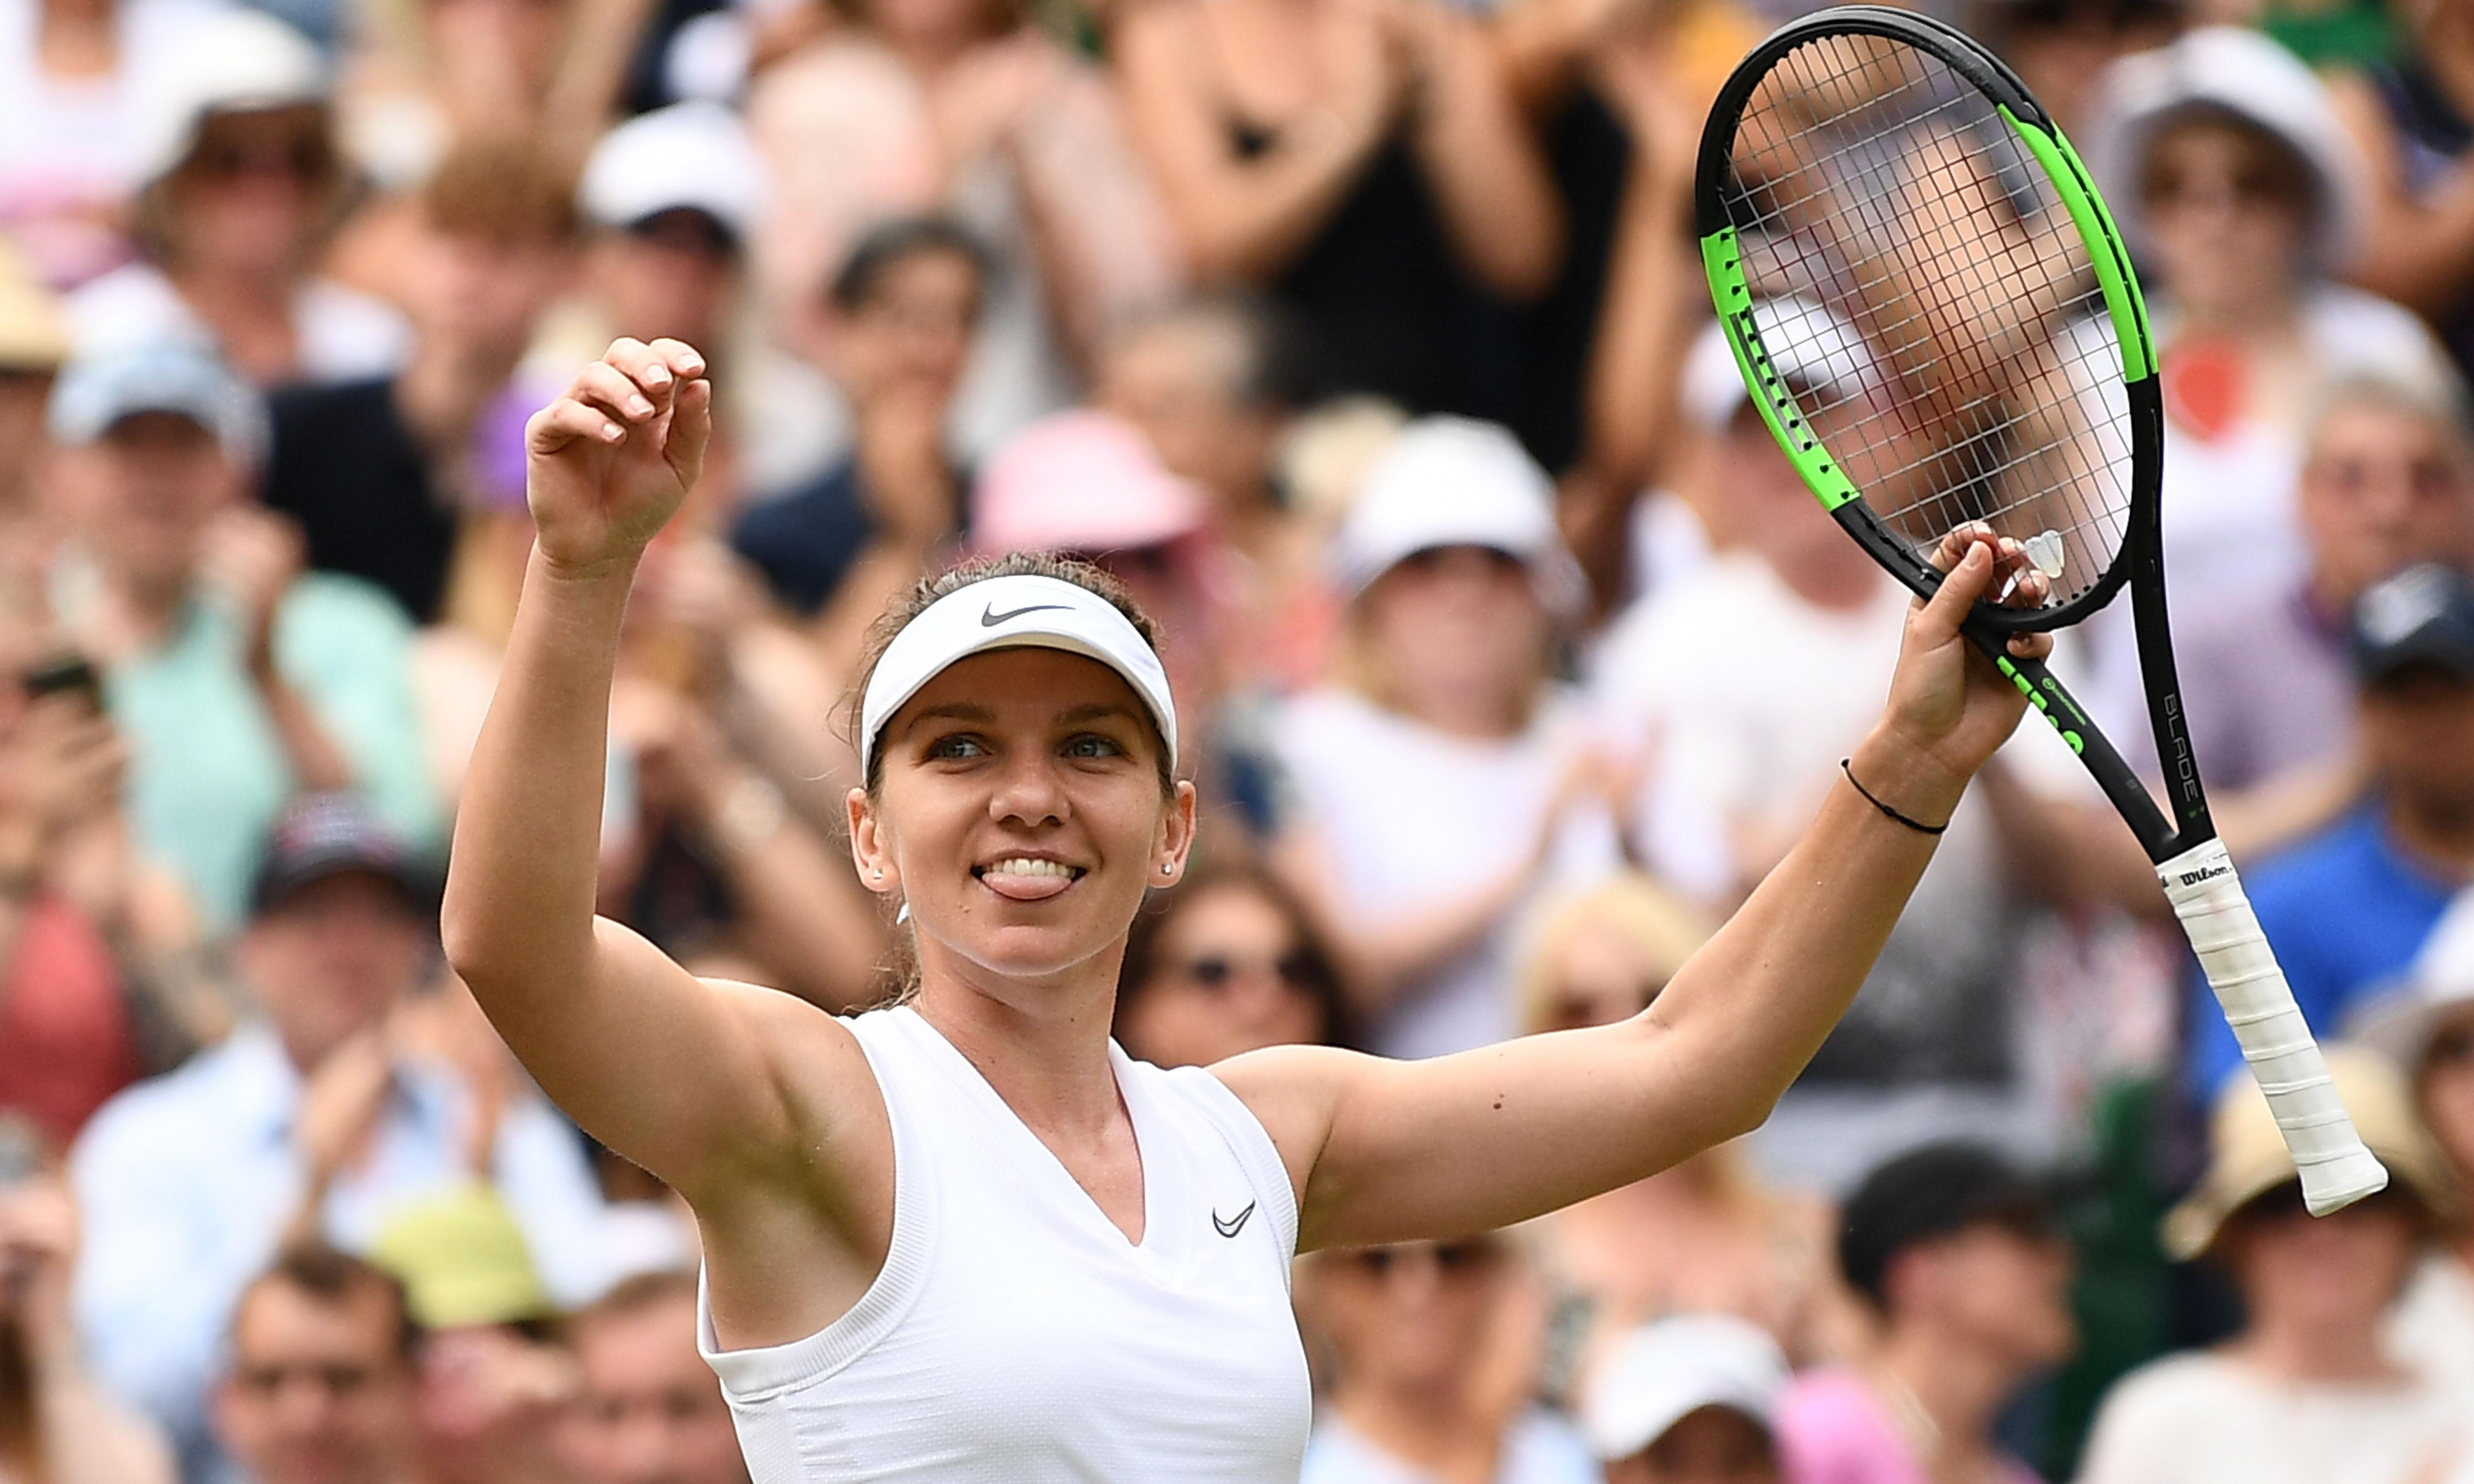 Wimbledon 2019: Halep 'desperate' for title after semi-final win over Svitolina